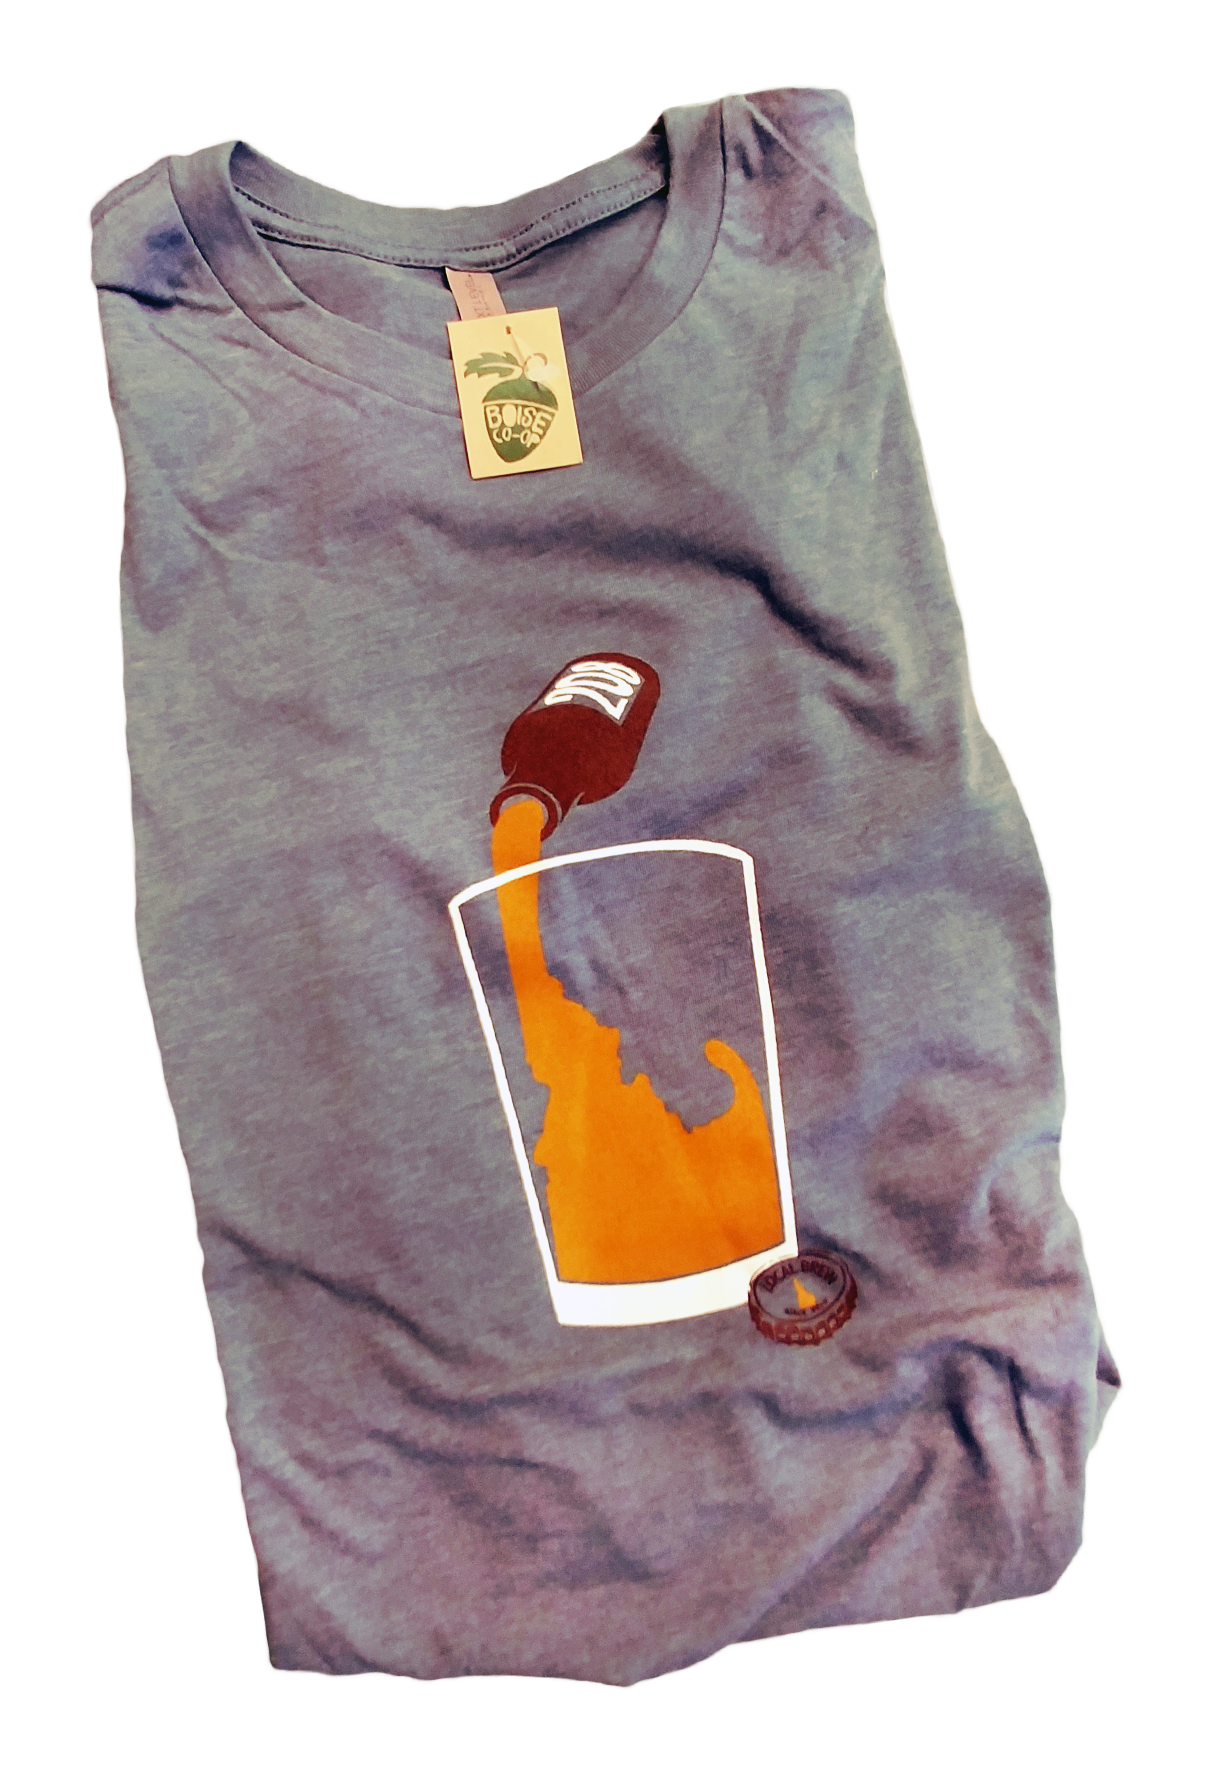 Banana Ink 208 Beer Glass T-shirt, $23.99  Super soft, light-weight material perfect for summer wear. Strut your 208 while you still can.